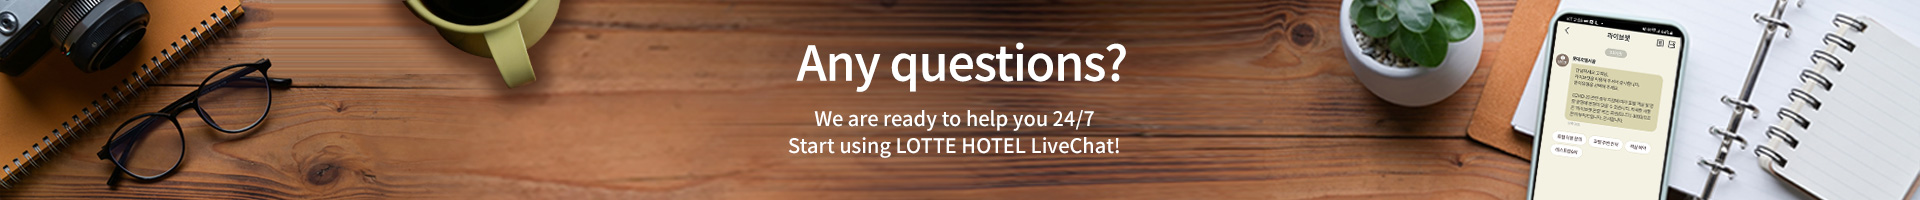 Lotte Hotel LiveChat